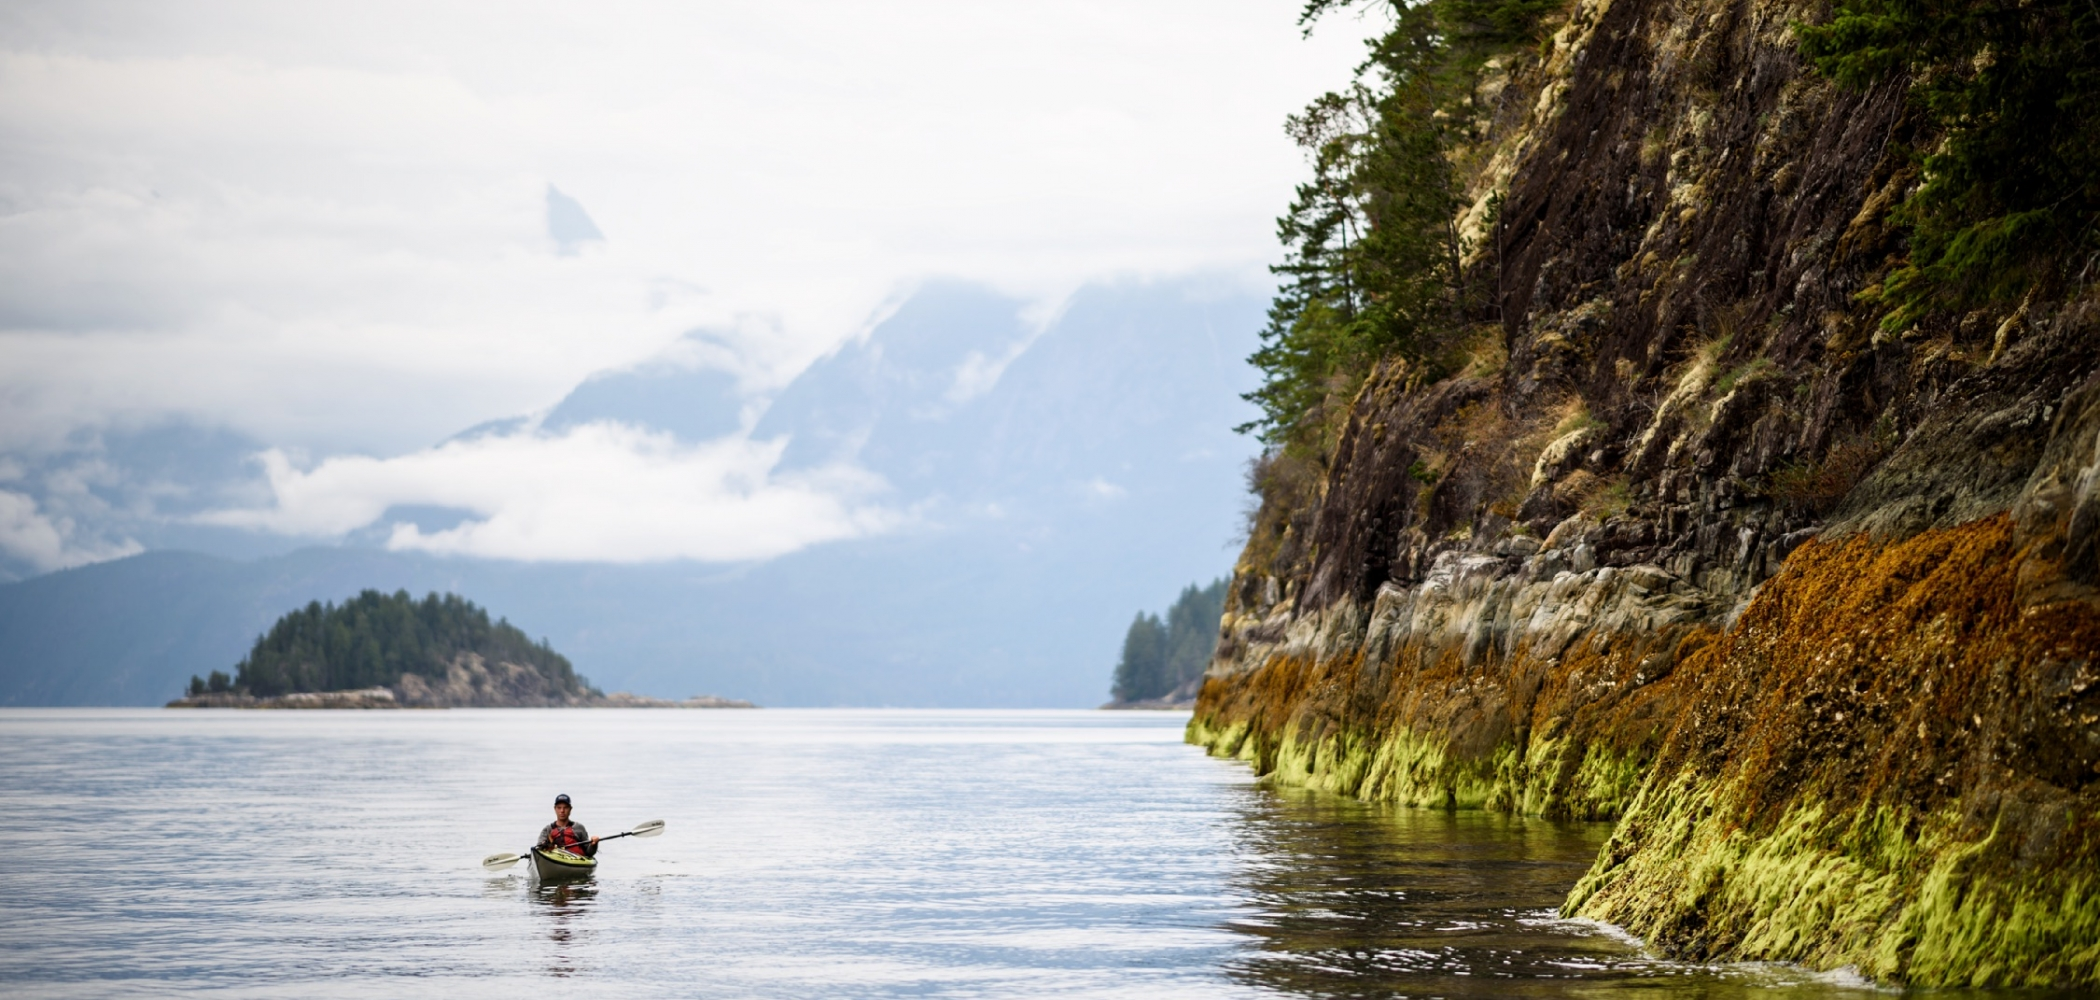 A kayaker paddles along the rugged coastline of Desolation Sound at low tide.